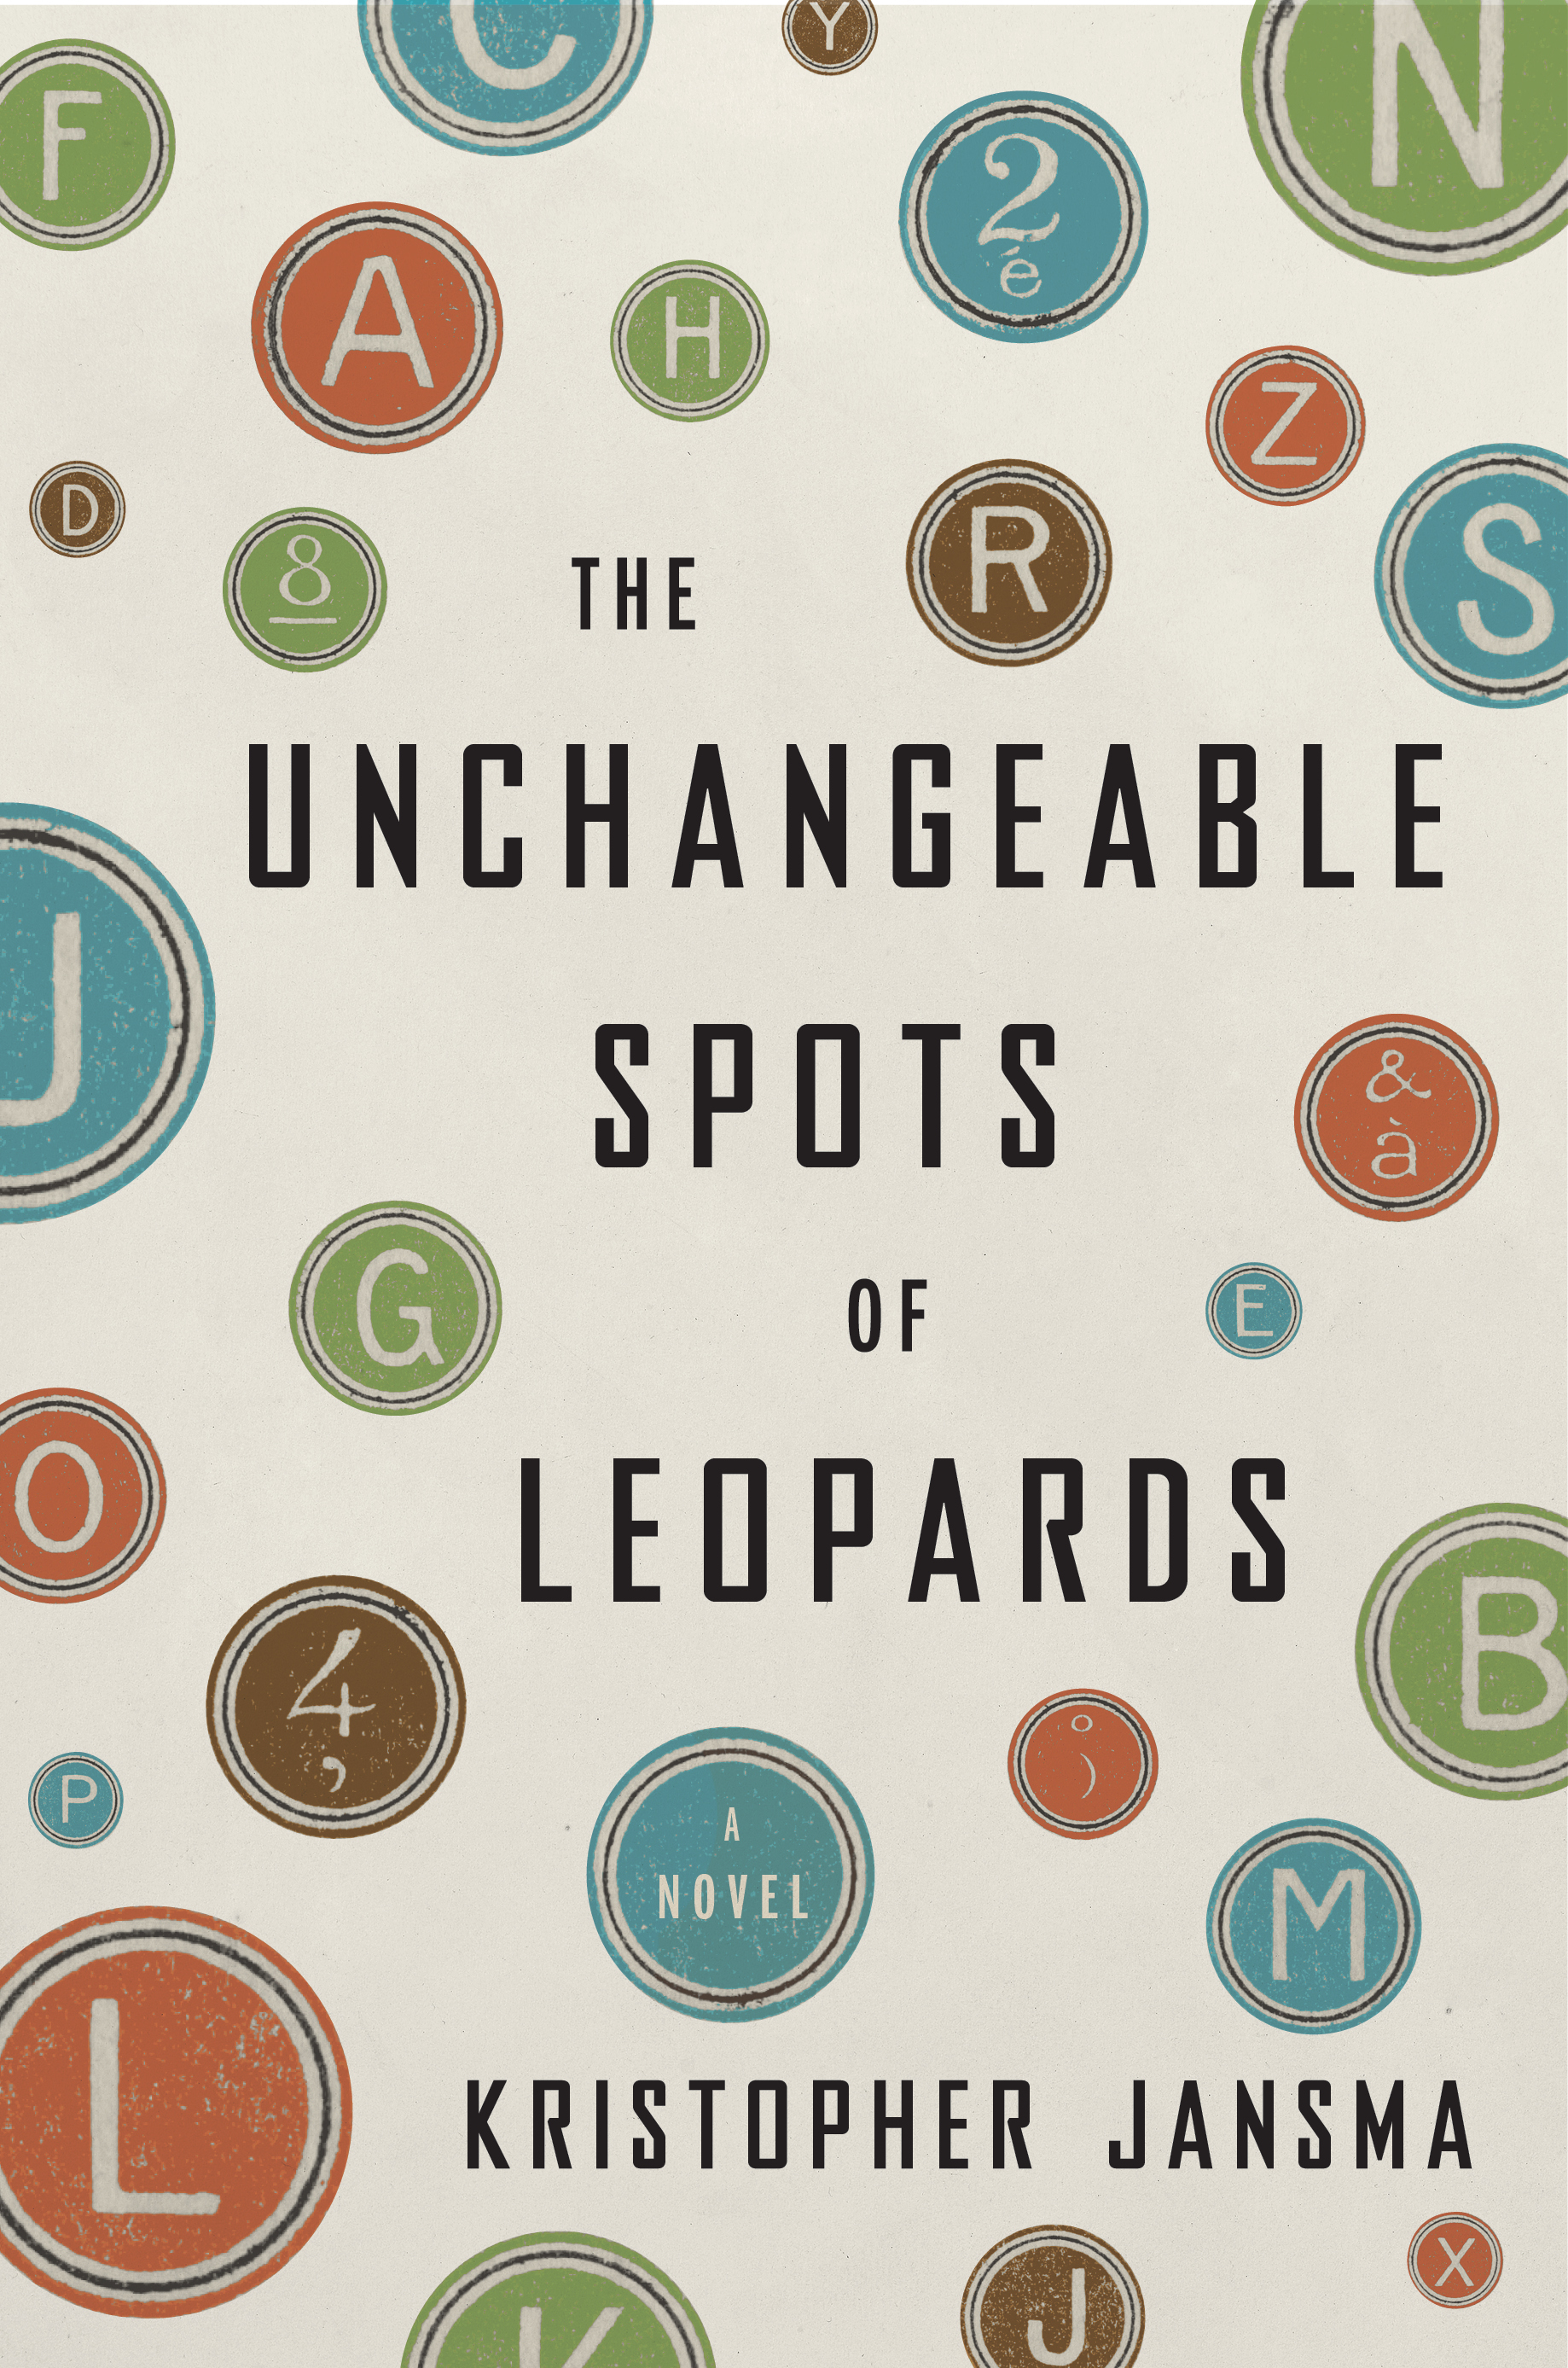 Book Launch: The Unchangeable Spots of Leopards by Kristopher Jansma